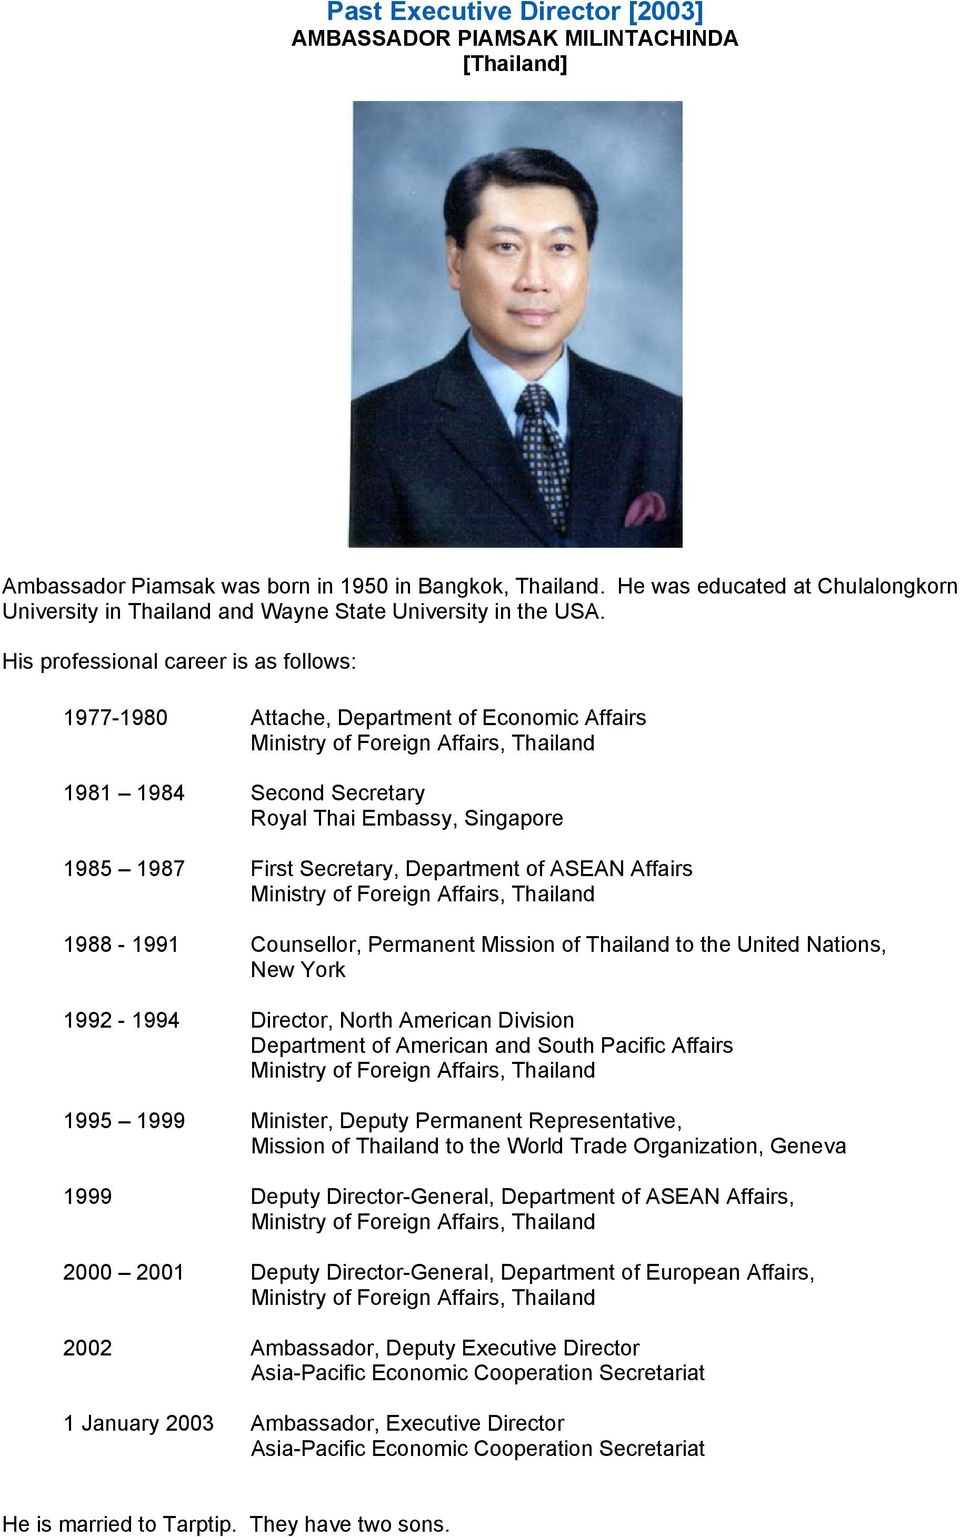 His professional career is as follows: 1977-1980 Attache, Department of Economic Affairs Ministry of Foreign Affairs, Thailand 1981 1984 Second Secretary Royal Thai Embassy, Singapore 1985 1987 First